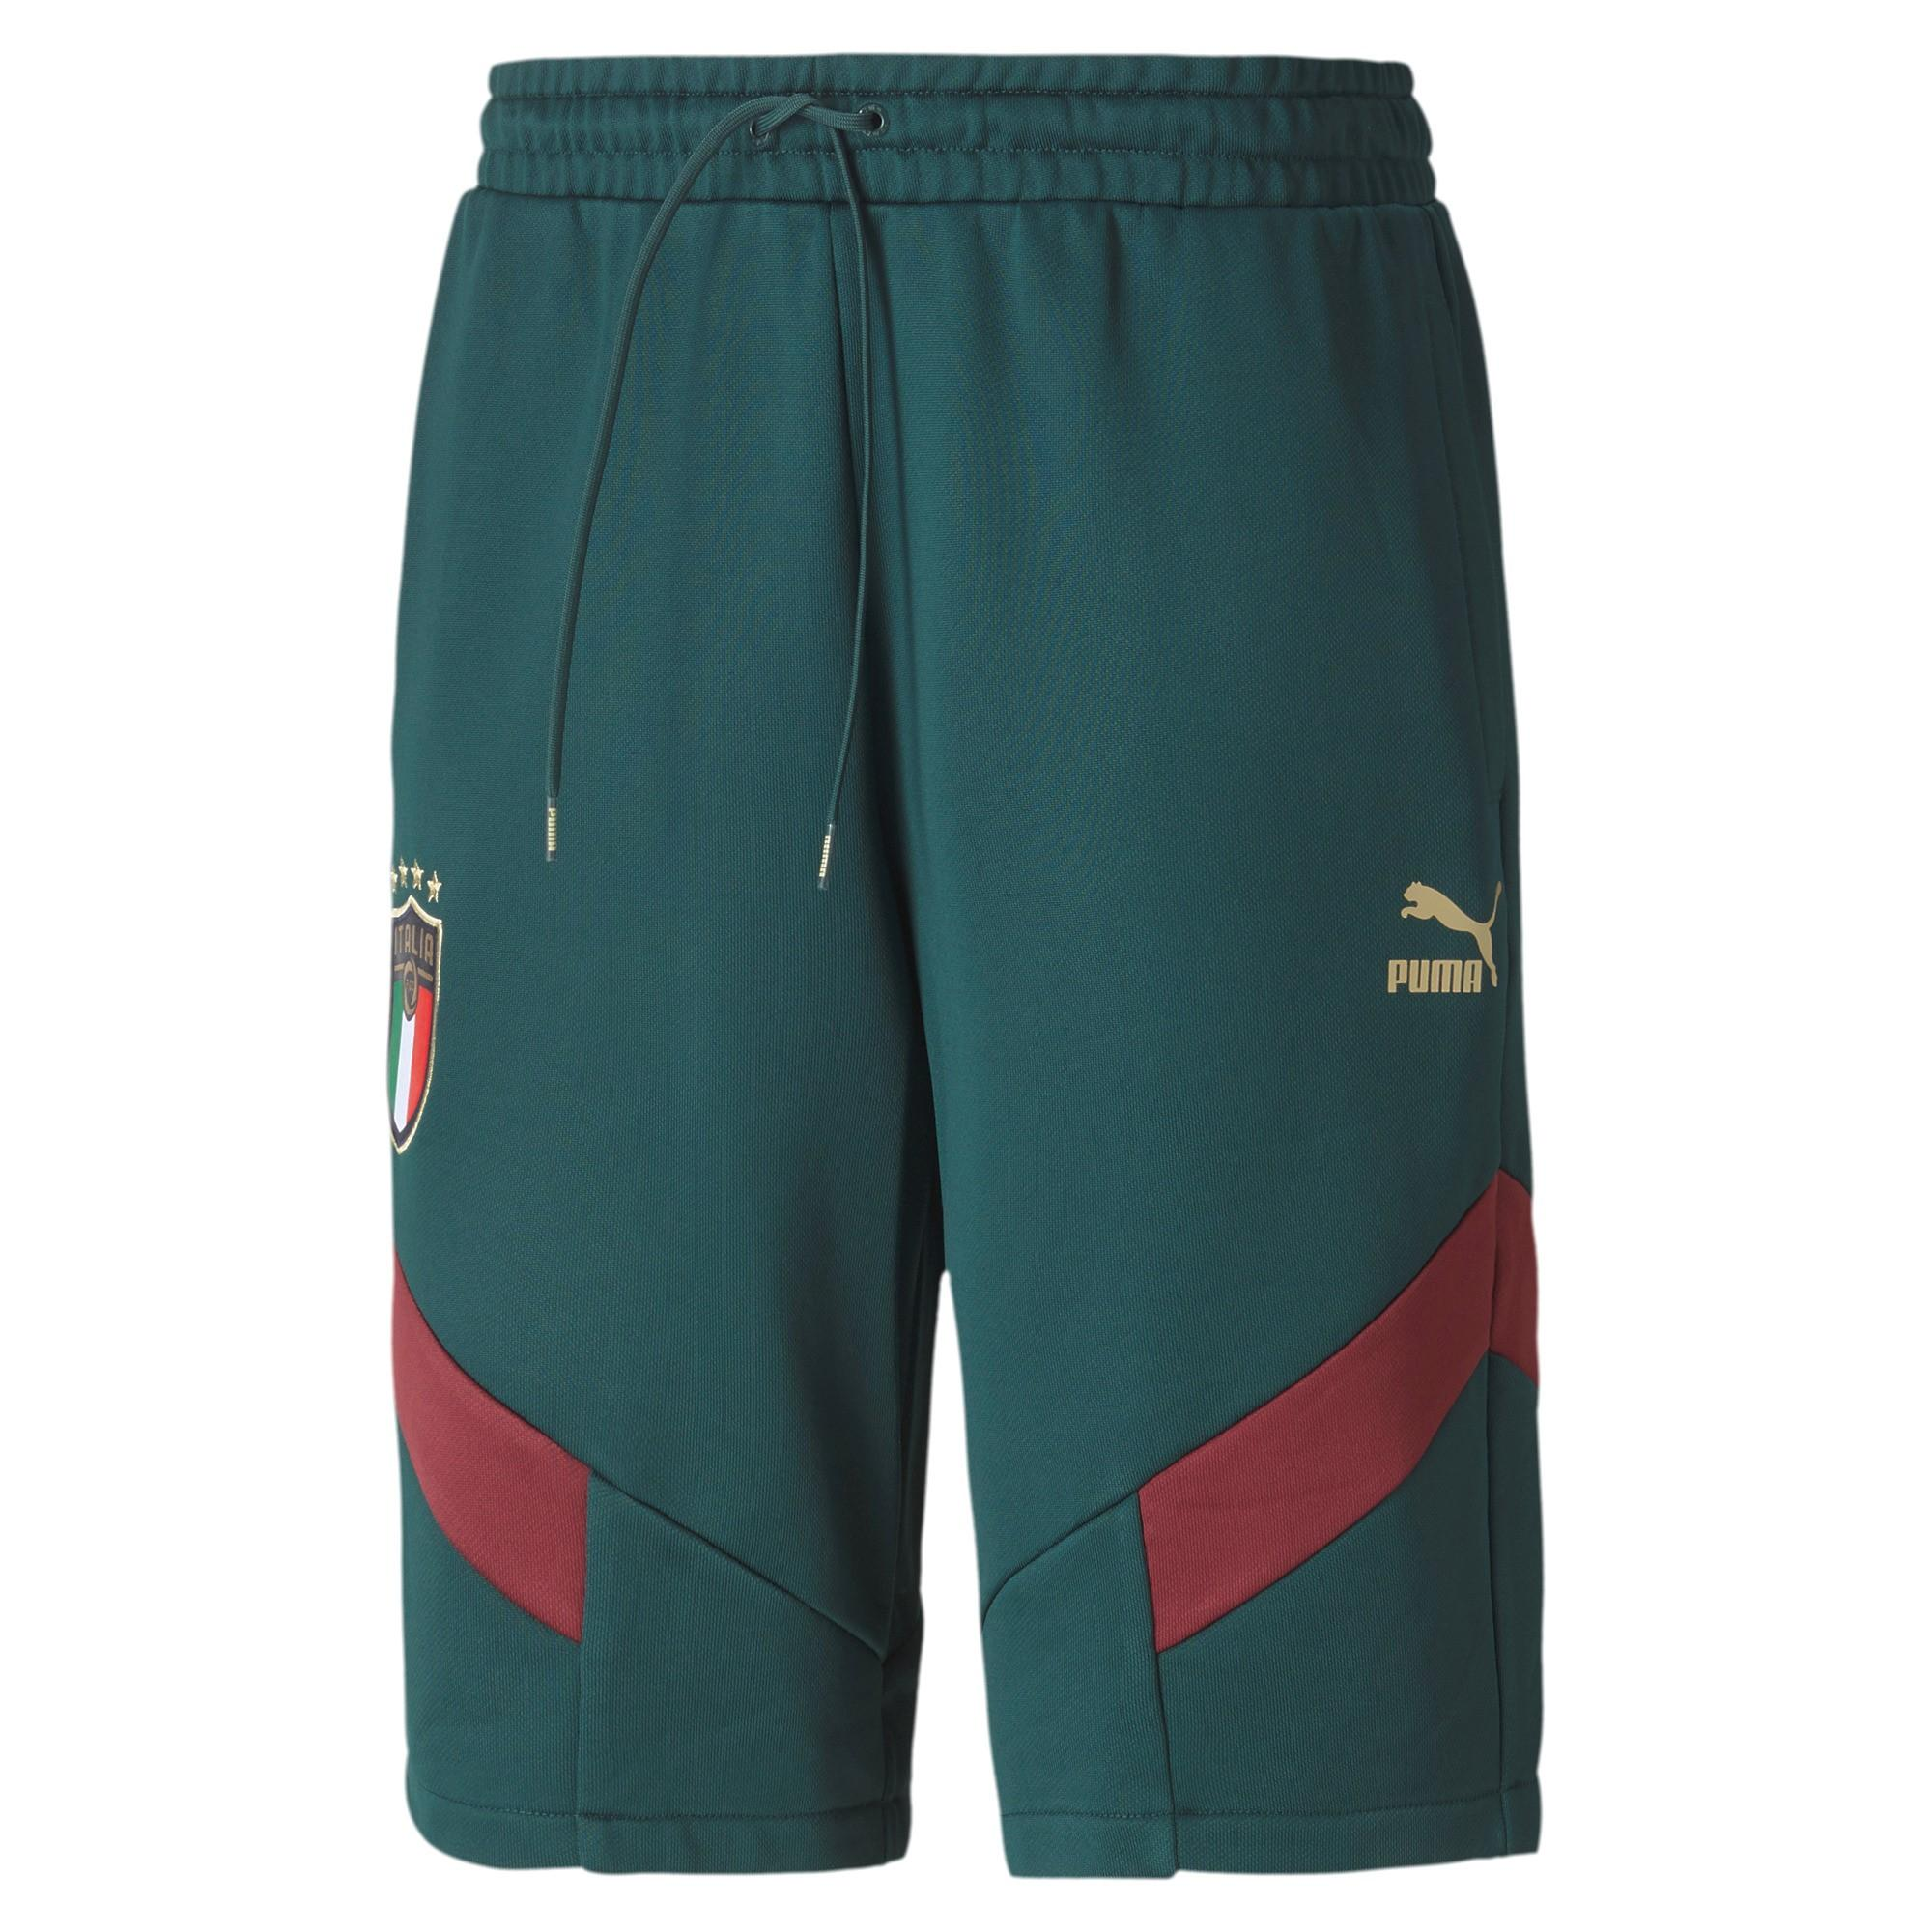 Puma Short Pants Iconic Mcs Italy